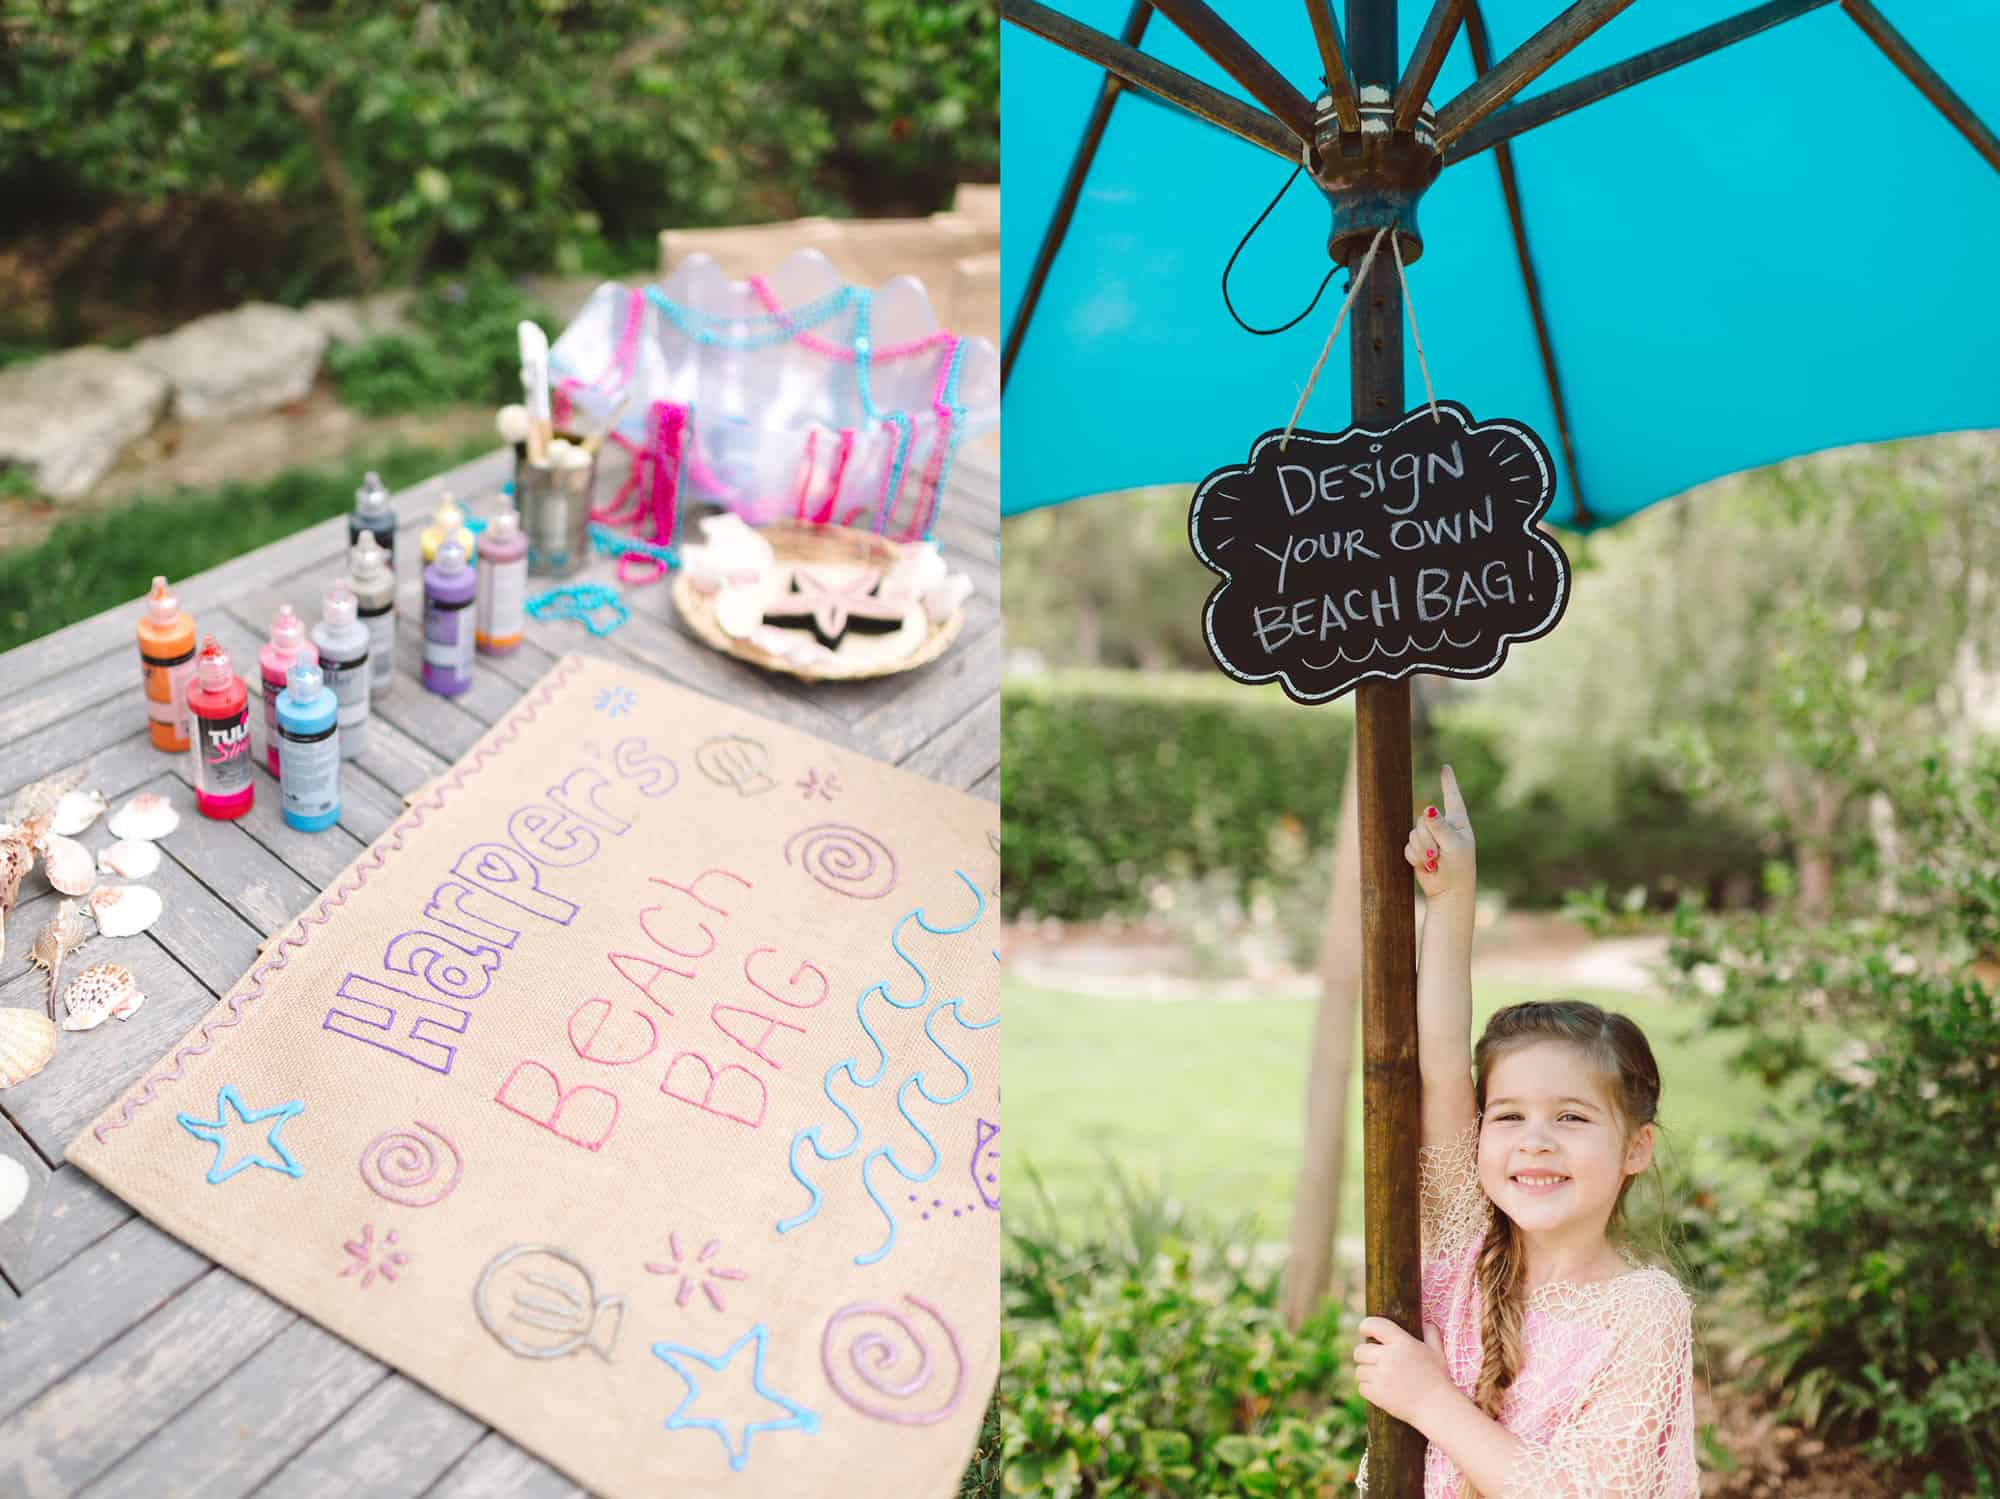 Fins & Tales • Harper turns 5 by Tiffani Thiessen • Photography by Rebecca Sanabria